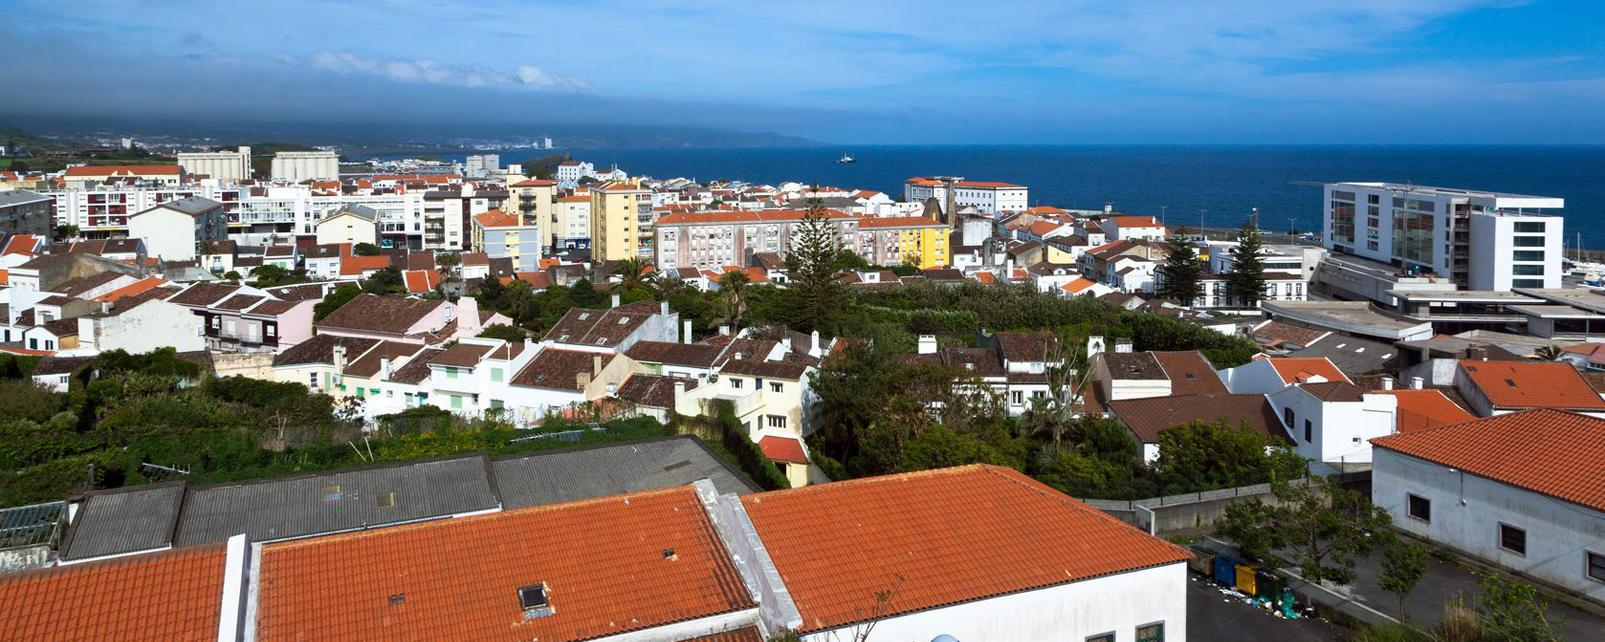 ponta delgada senior dating site The amazing azores: an atlantic oasis close to home with stays and ponta delgada churches dating back to the 16th century churches dominate the.